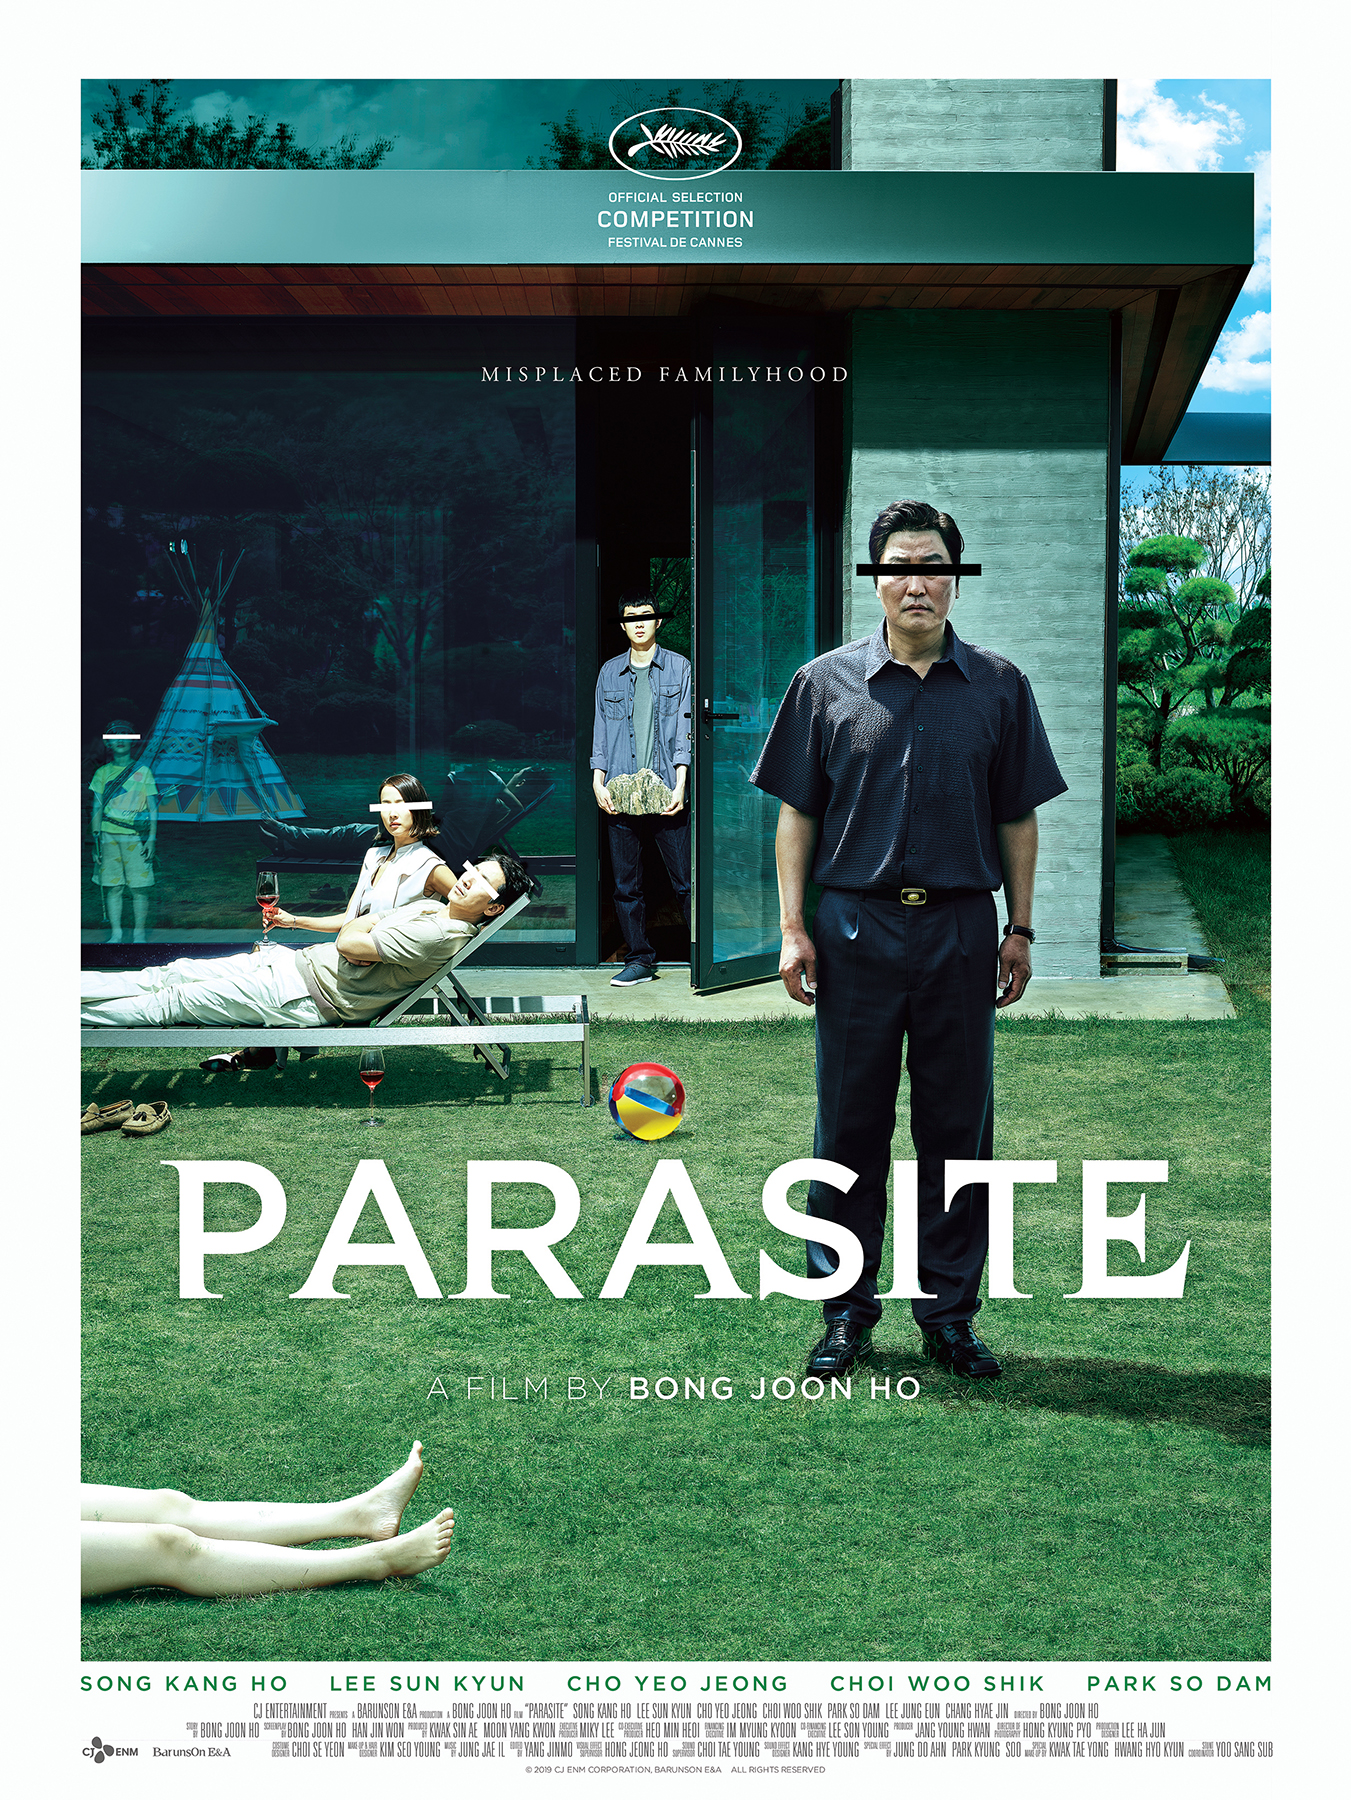 Parasite Movie Poster And Trailer Fonts In Use